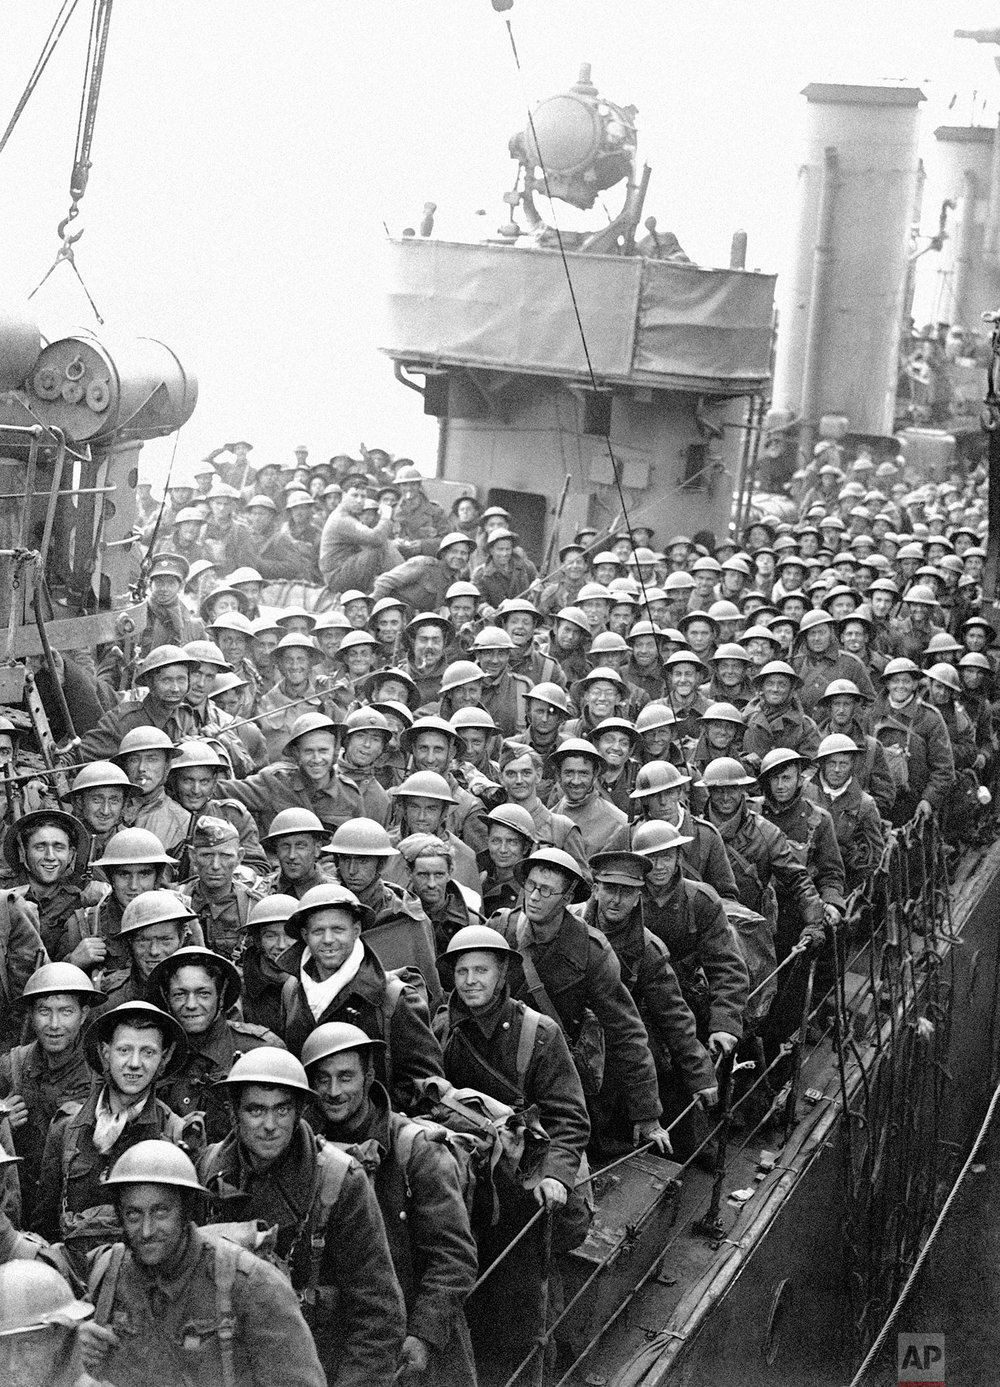 Hundreds of men of the British Expeditionary Force withdrawn from Dunkirk and Northern France are arriving back in England in a continuous stream. A destroyer's deck loaded with men of the B.E.F., May 31, 1940, somewhere in England. (AP Photo)